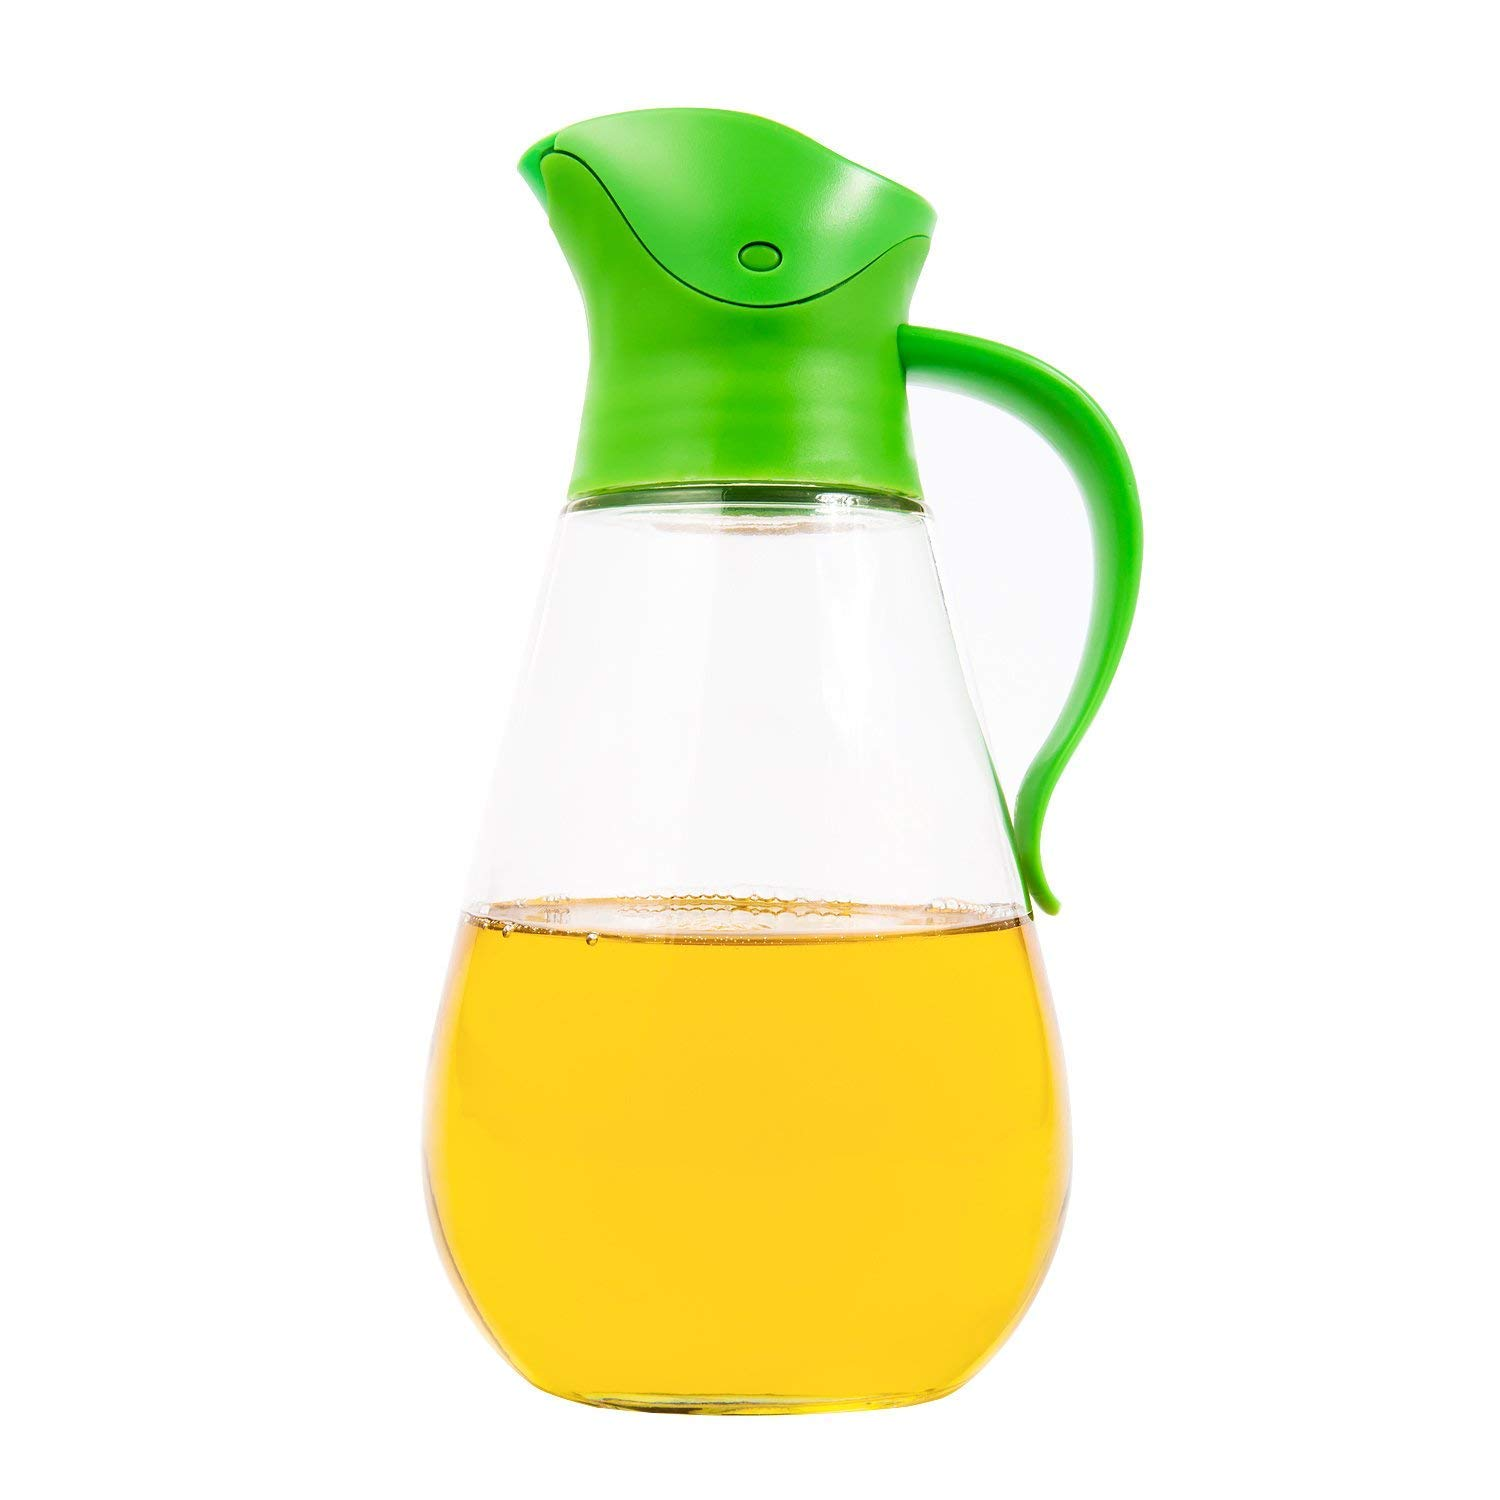 Leak Proof 18 6oz Cominhkpr152854 Automatic Stopper Thrich Non Drip Glass Oil Vinegar Container And Dispenser Bottle With Automatic Cap Stainless Steel Nozzle And Non Slip Handle Precise Pour Spout